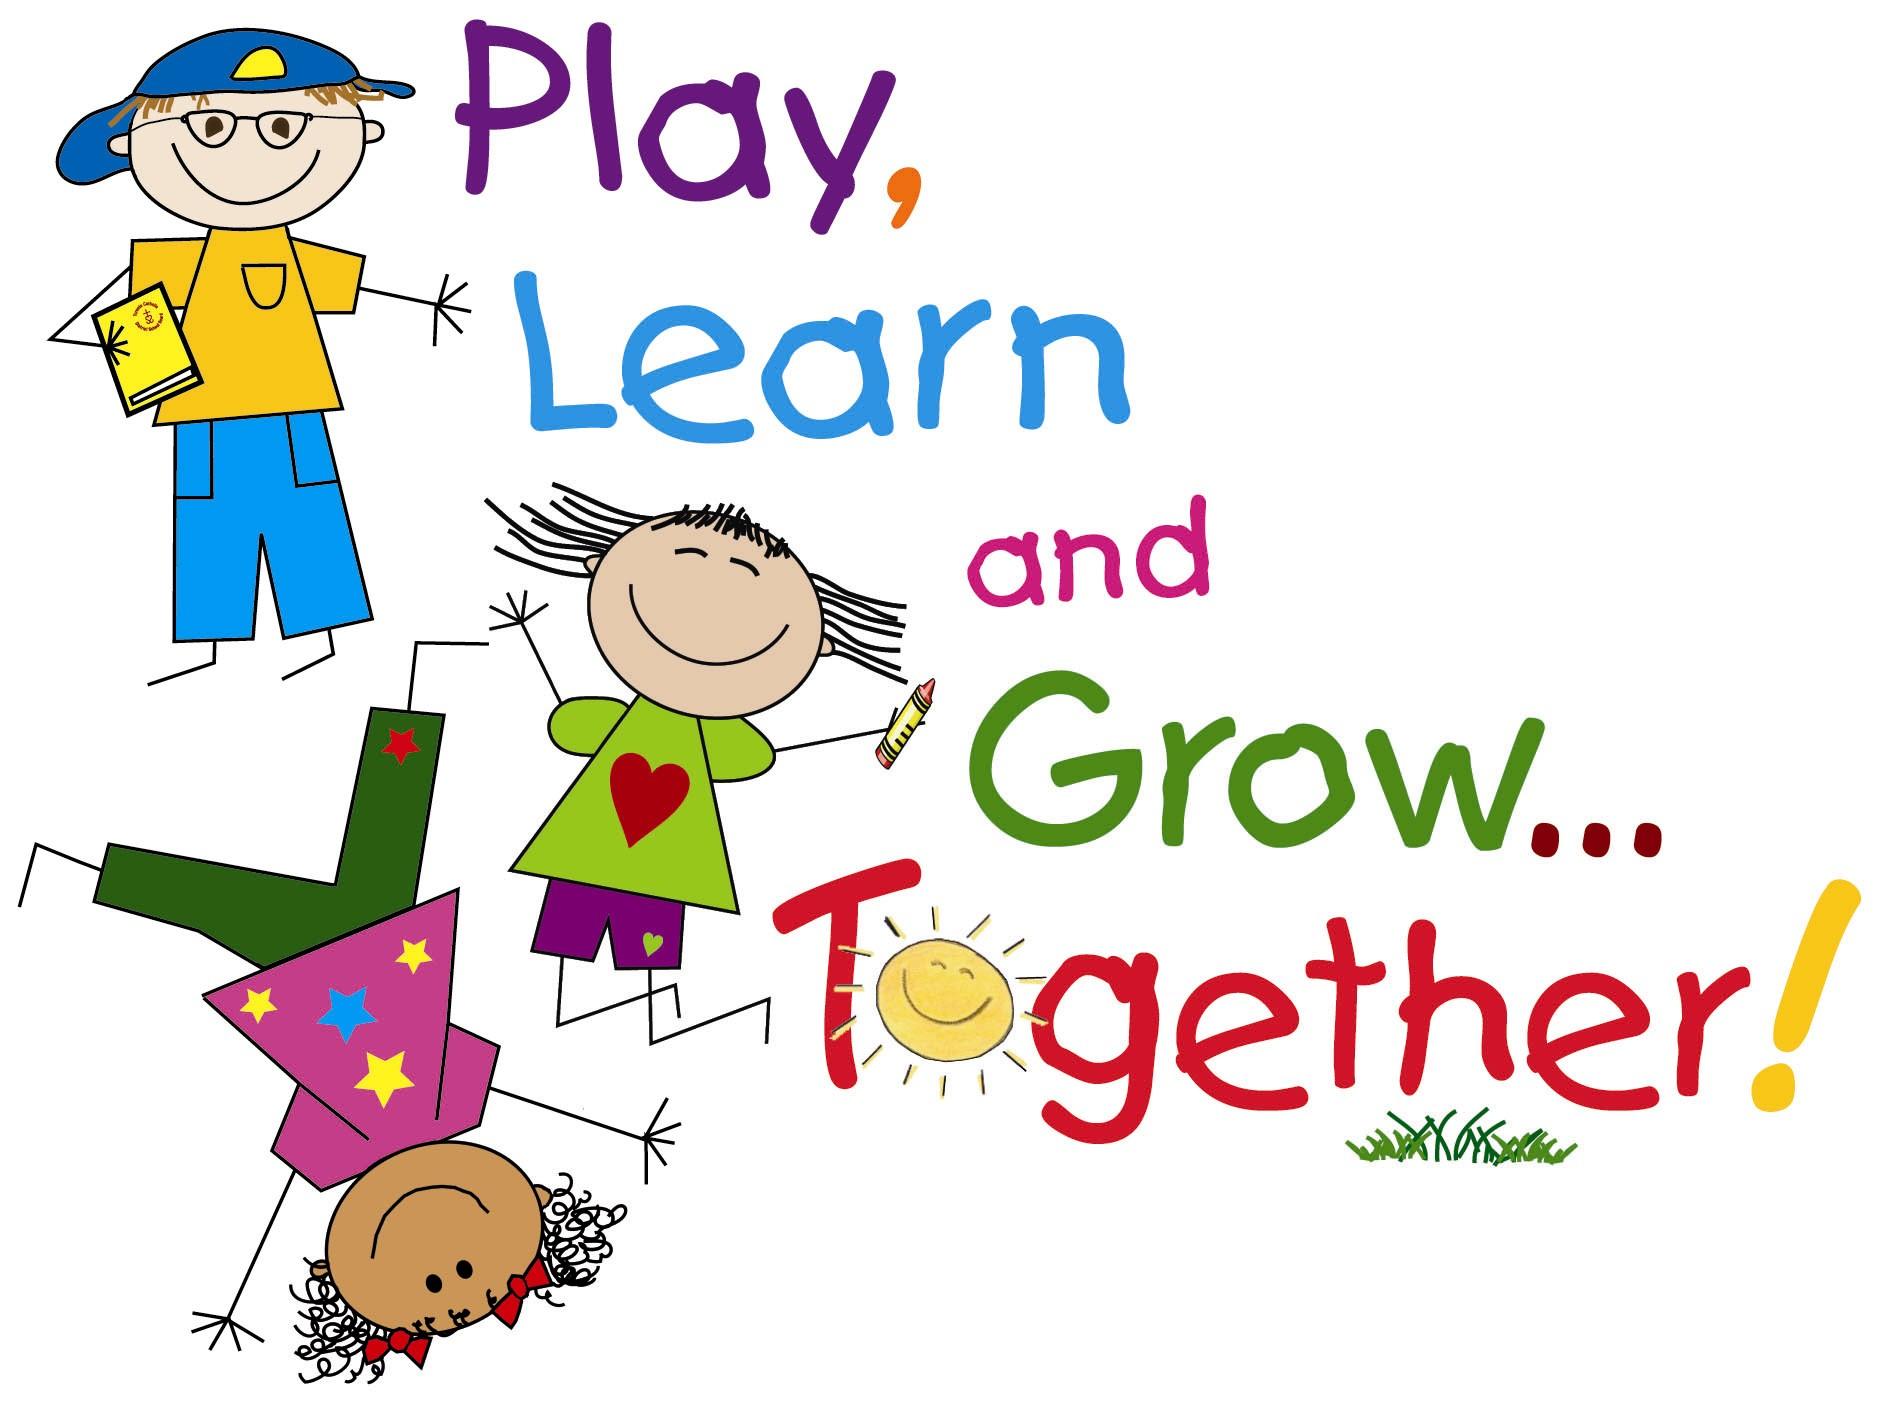 Play, Learn, and Grow Together.jpg